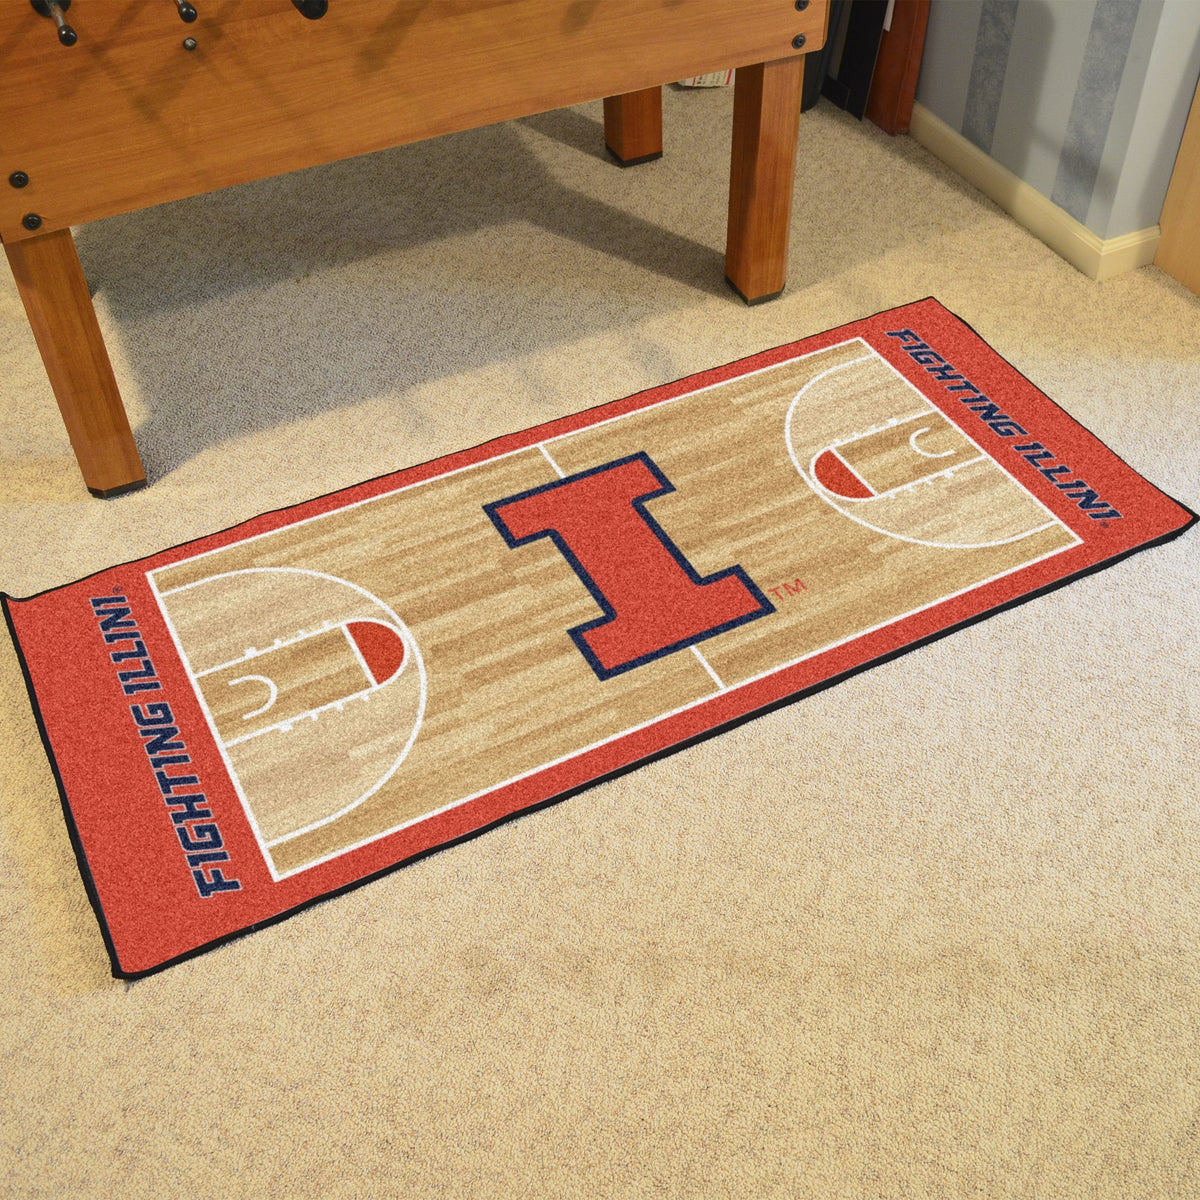 Collegiate - NCAA Basketball Runner Collegiate Mats, Rectangular Mats, NCAA Basketball Runner, Collegiate, Home Fan Mats Illinois